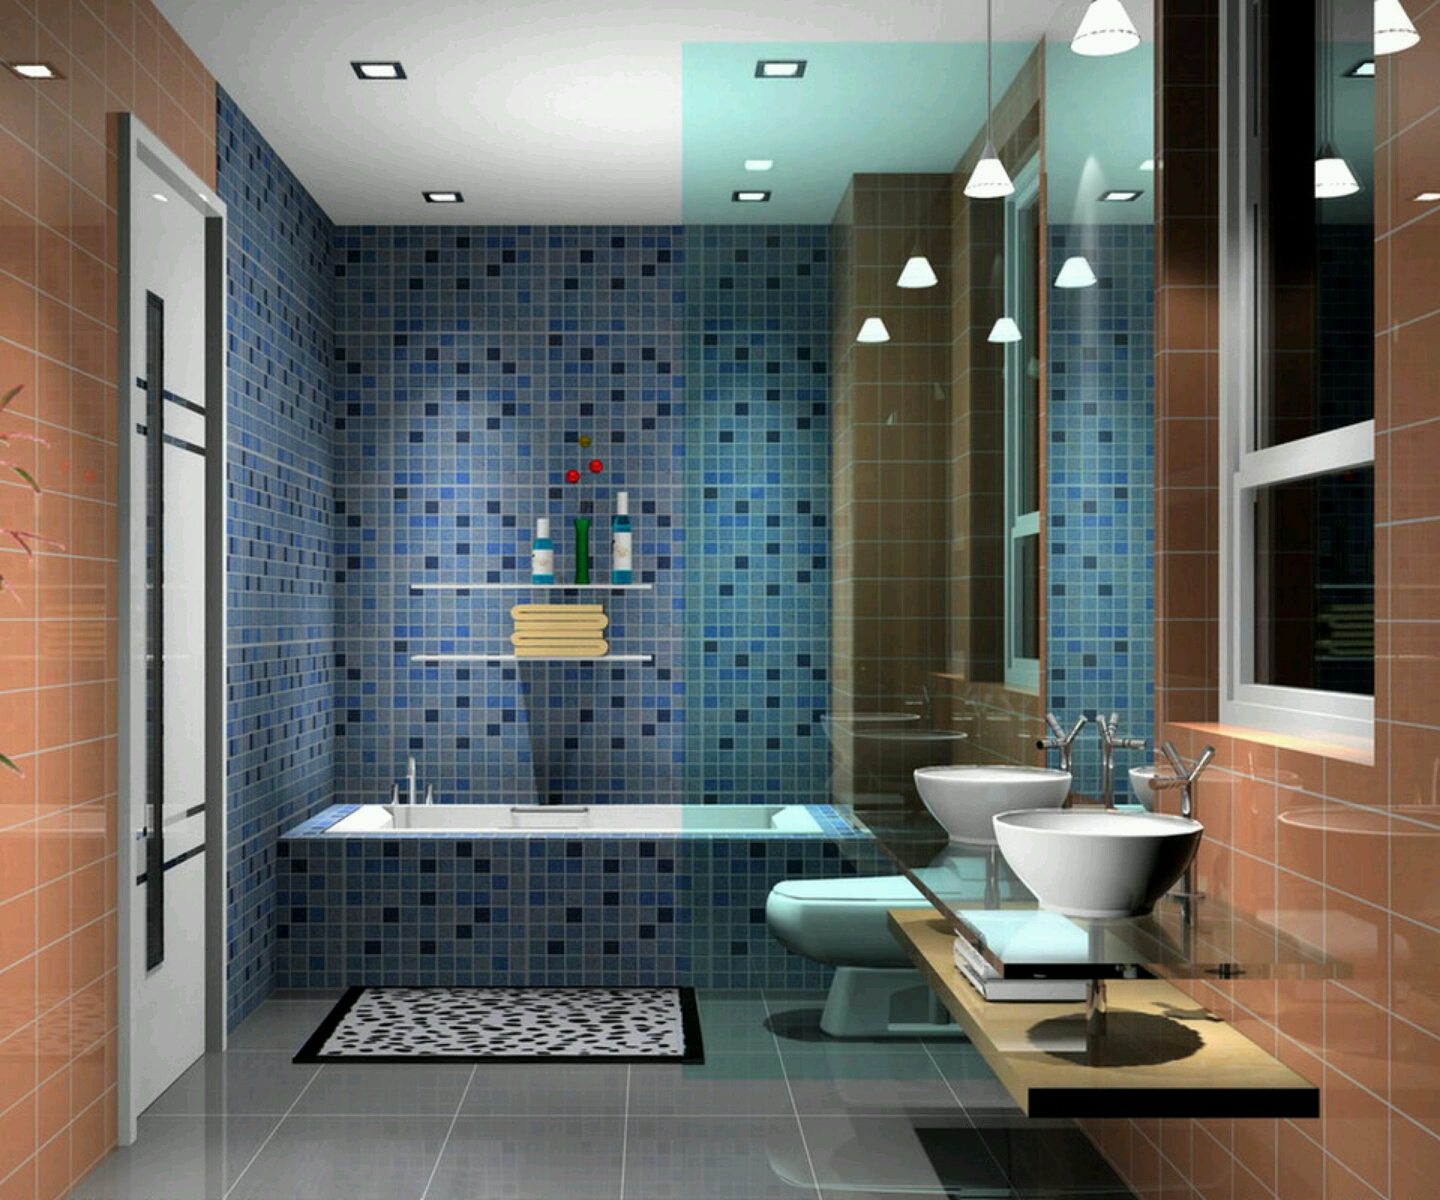 New home designs latest modern bathrooms best designs ideas for Best bathroom design ideas